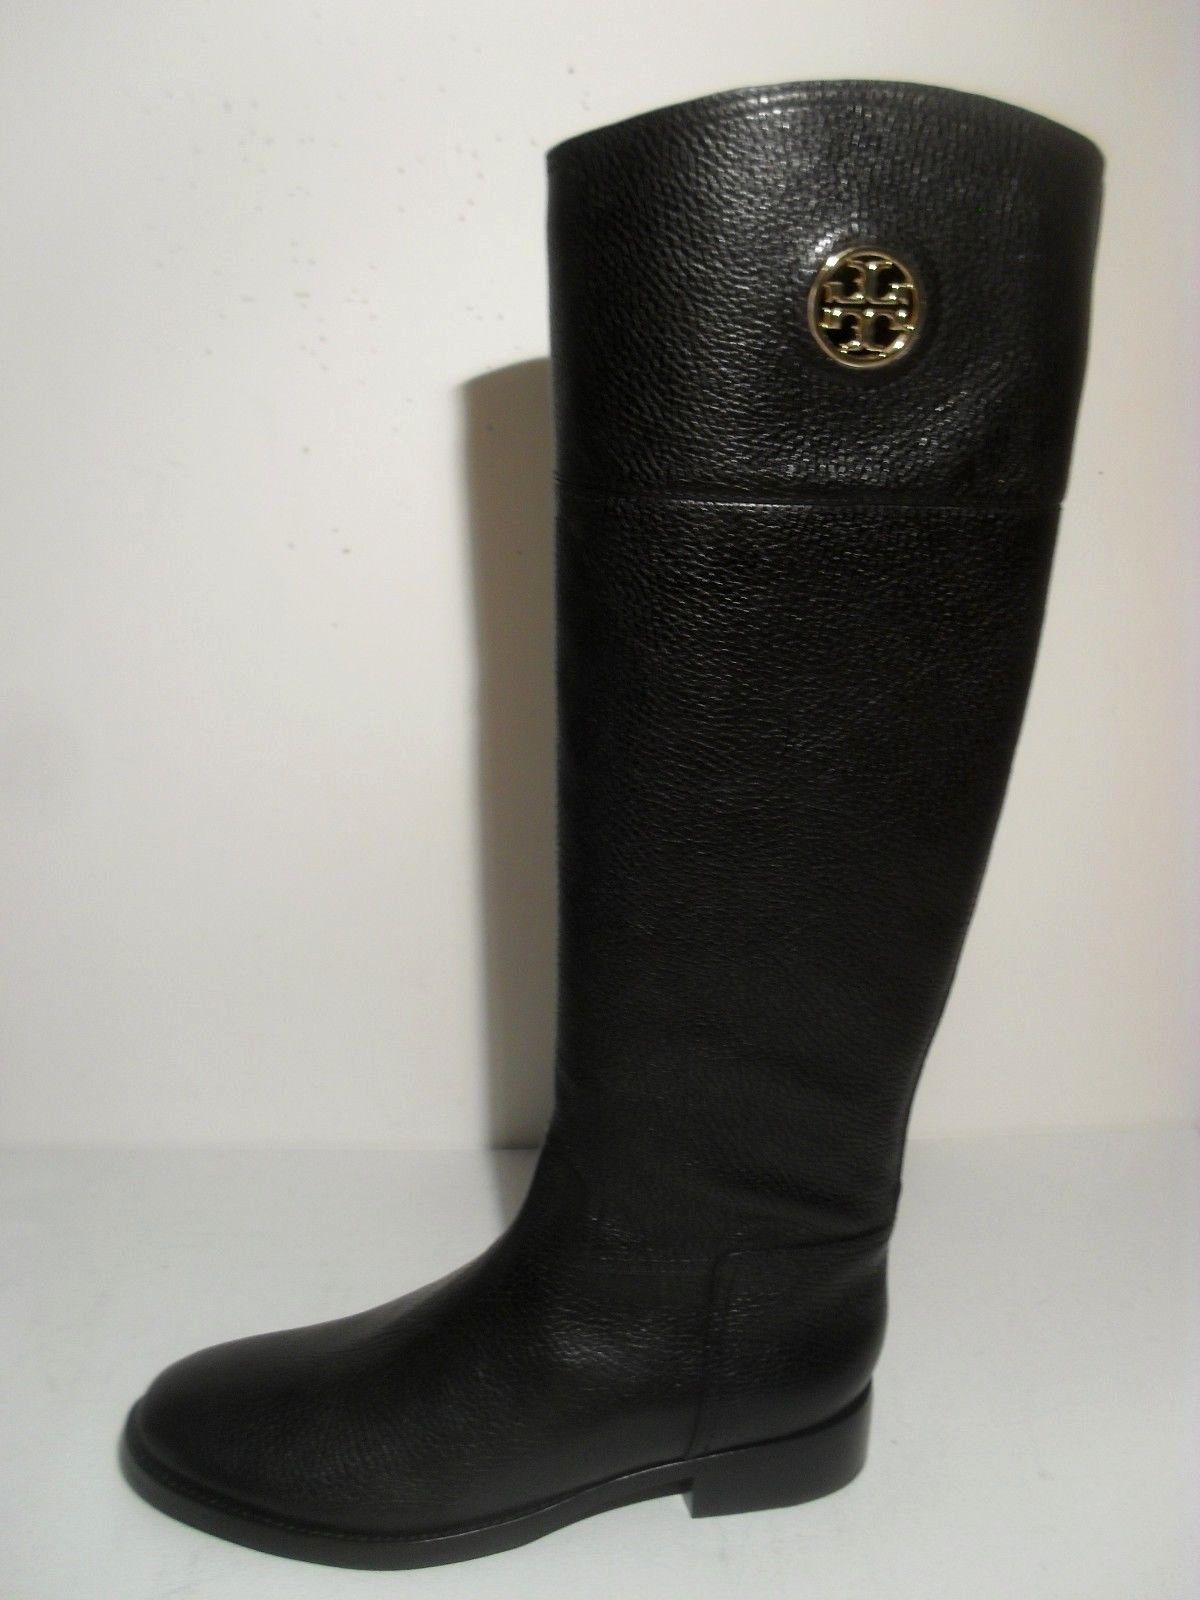 Tory Burch Junction Black Riding Boots Zipper Tumbled Leather Gold Logo New 5f3a66f4bc13